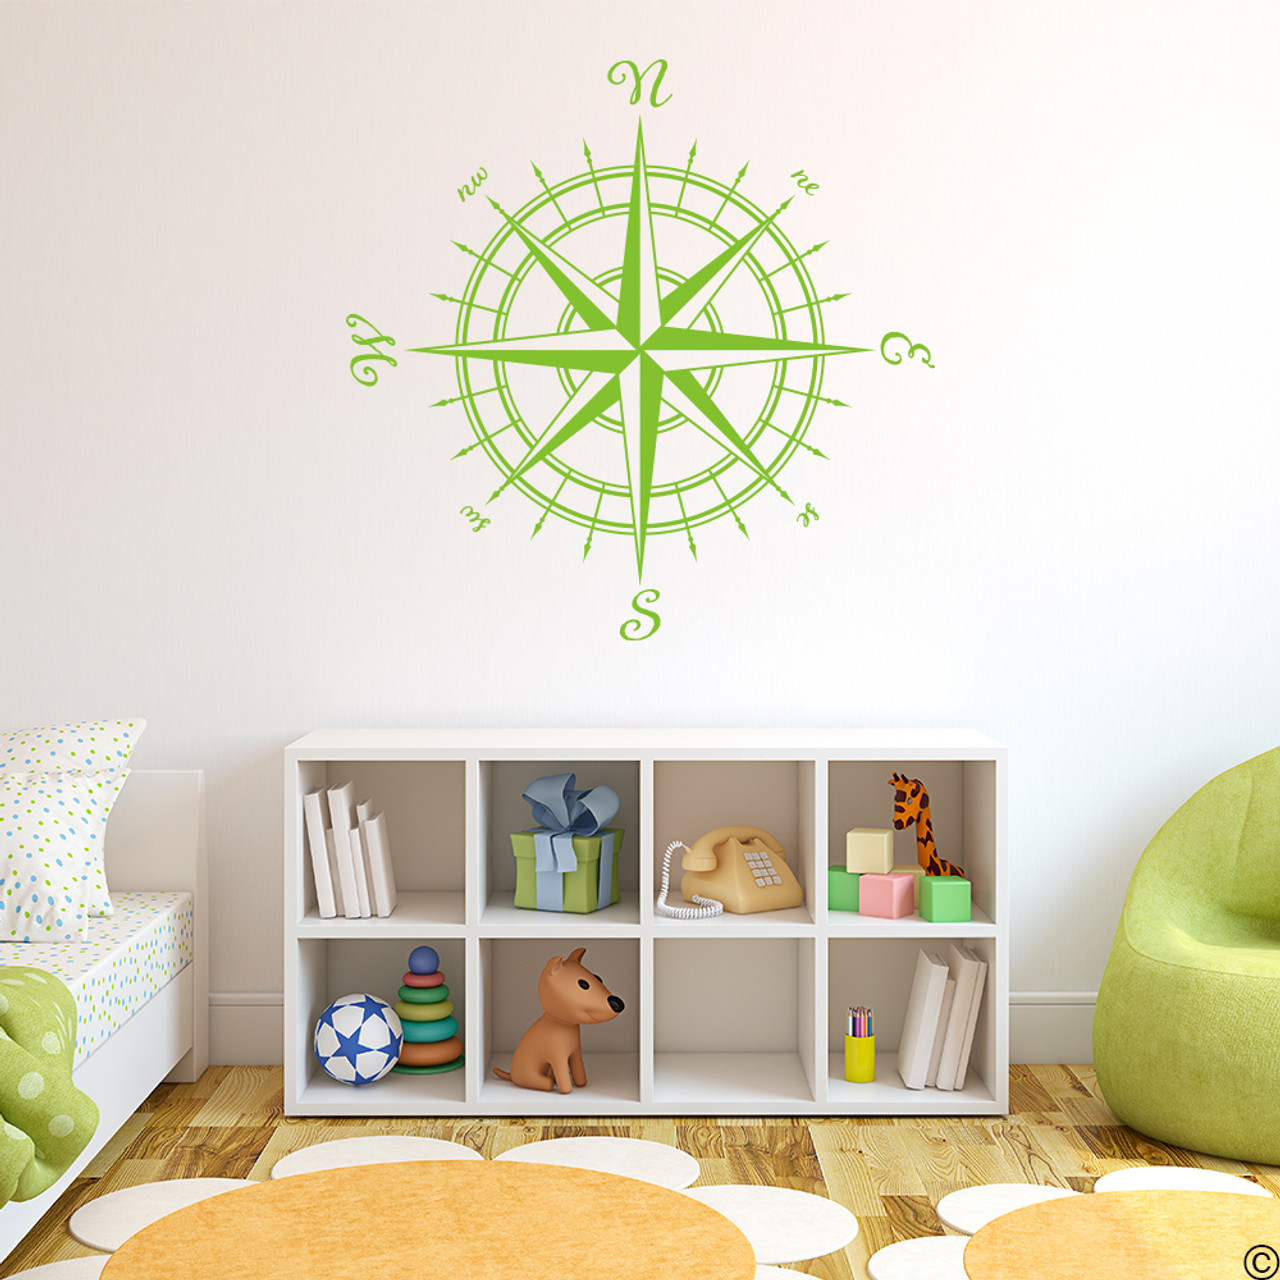 The Erasmus compass rose vinyl wall or ceiling decal in lime-tree green